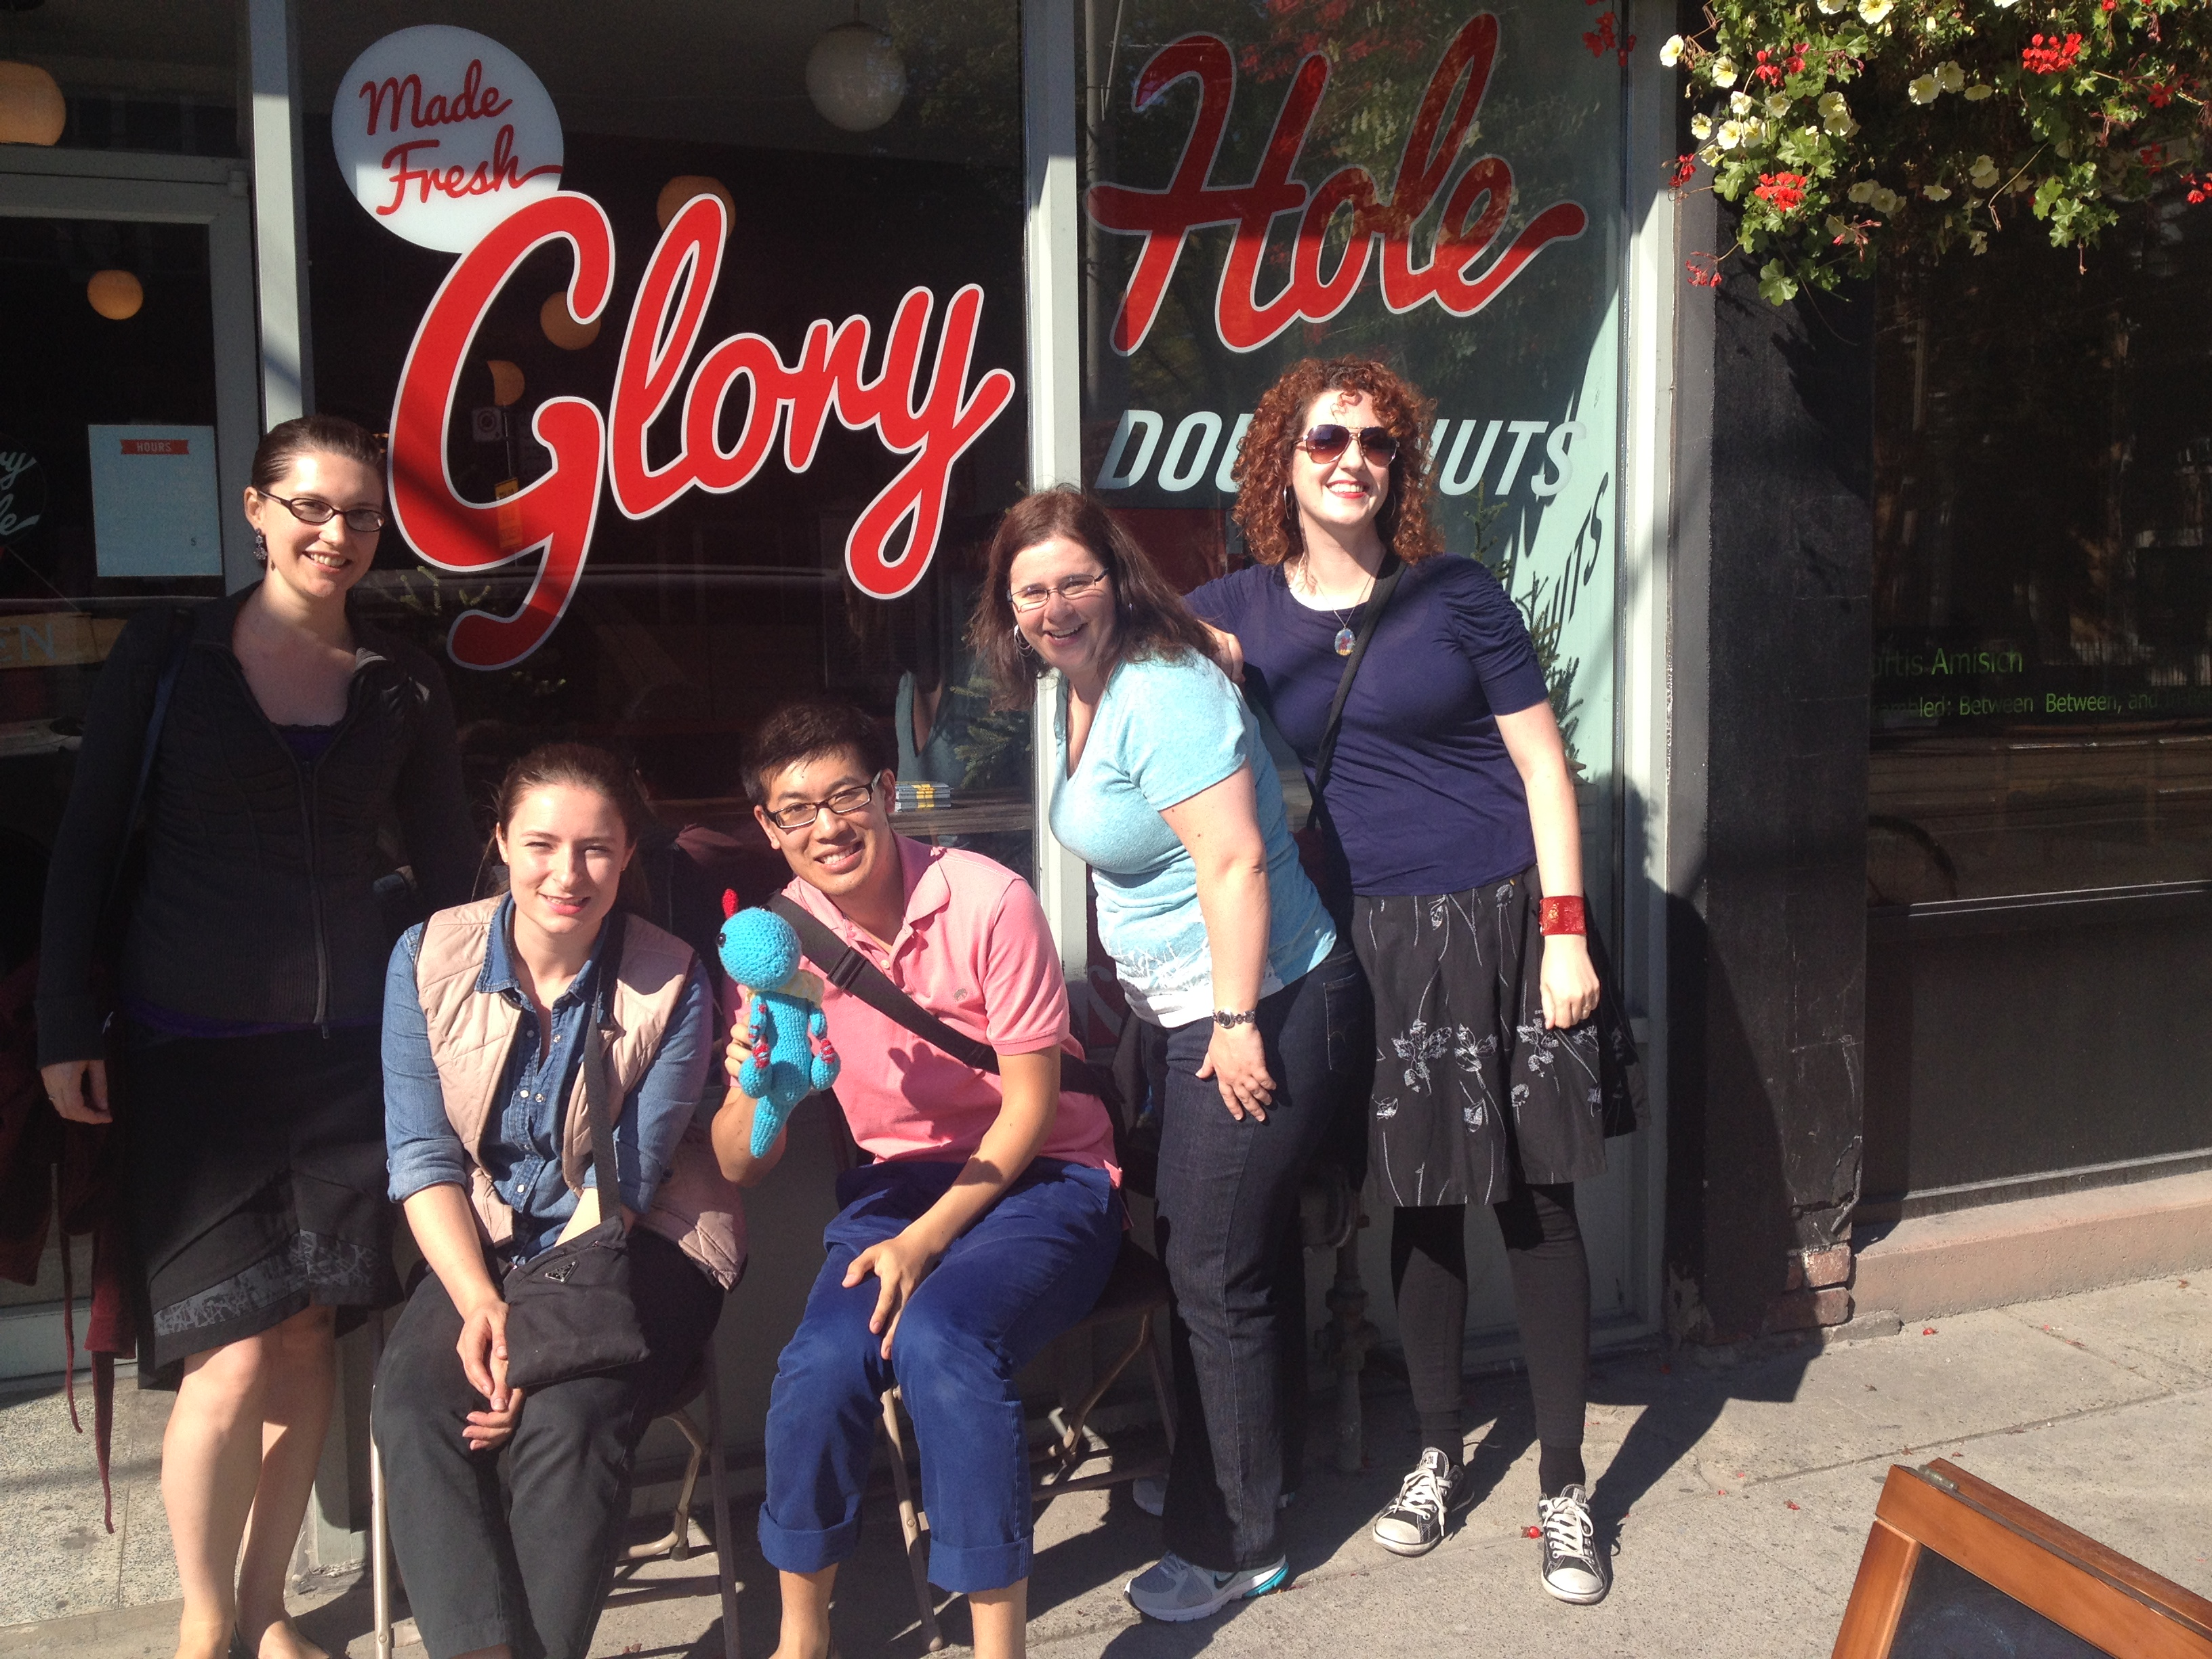 brunch, brunch crawl, donuts, glory hole, toronto